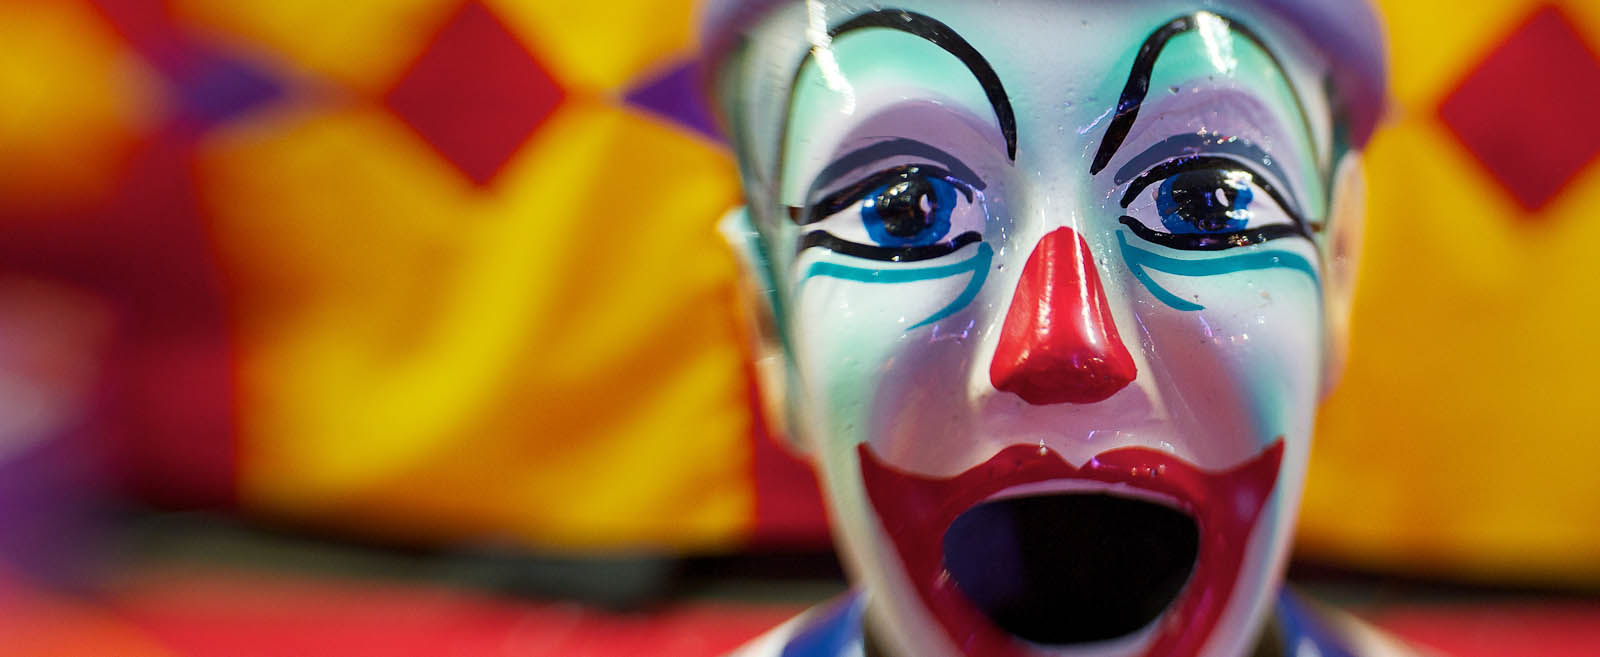 Lensbaby clown.jpg